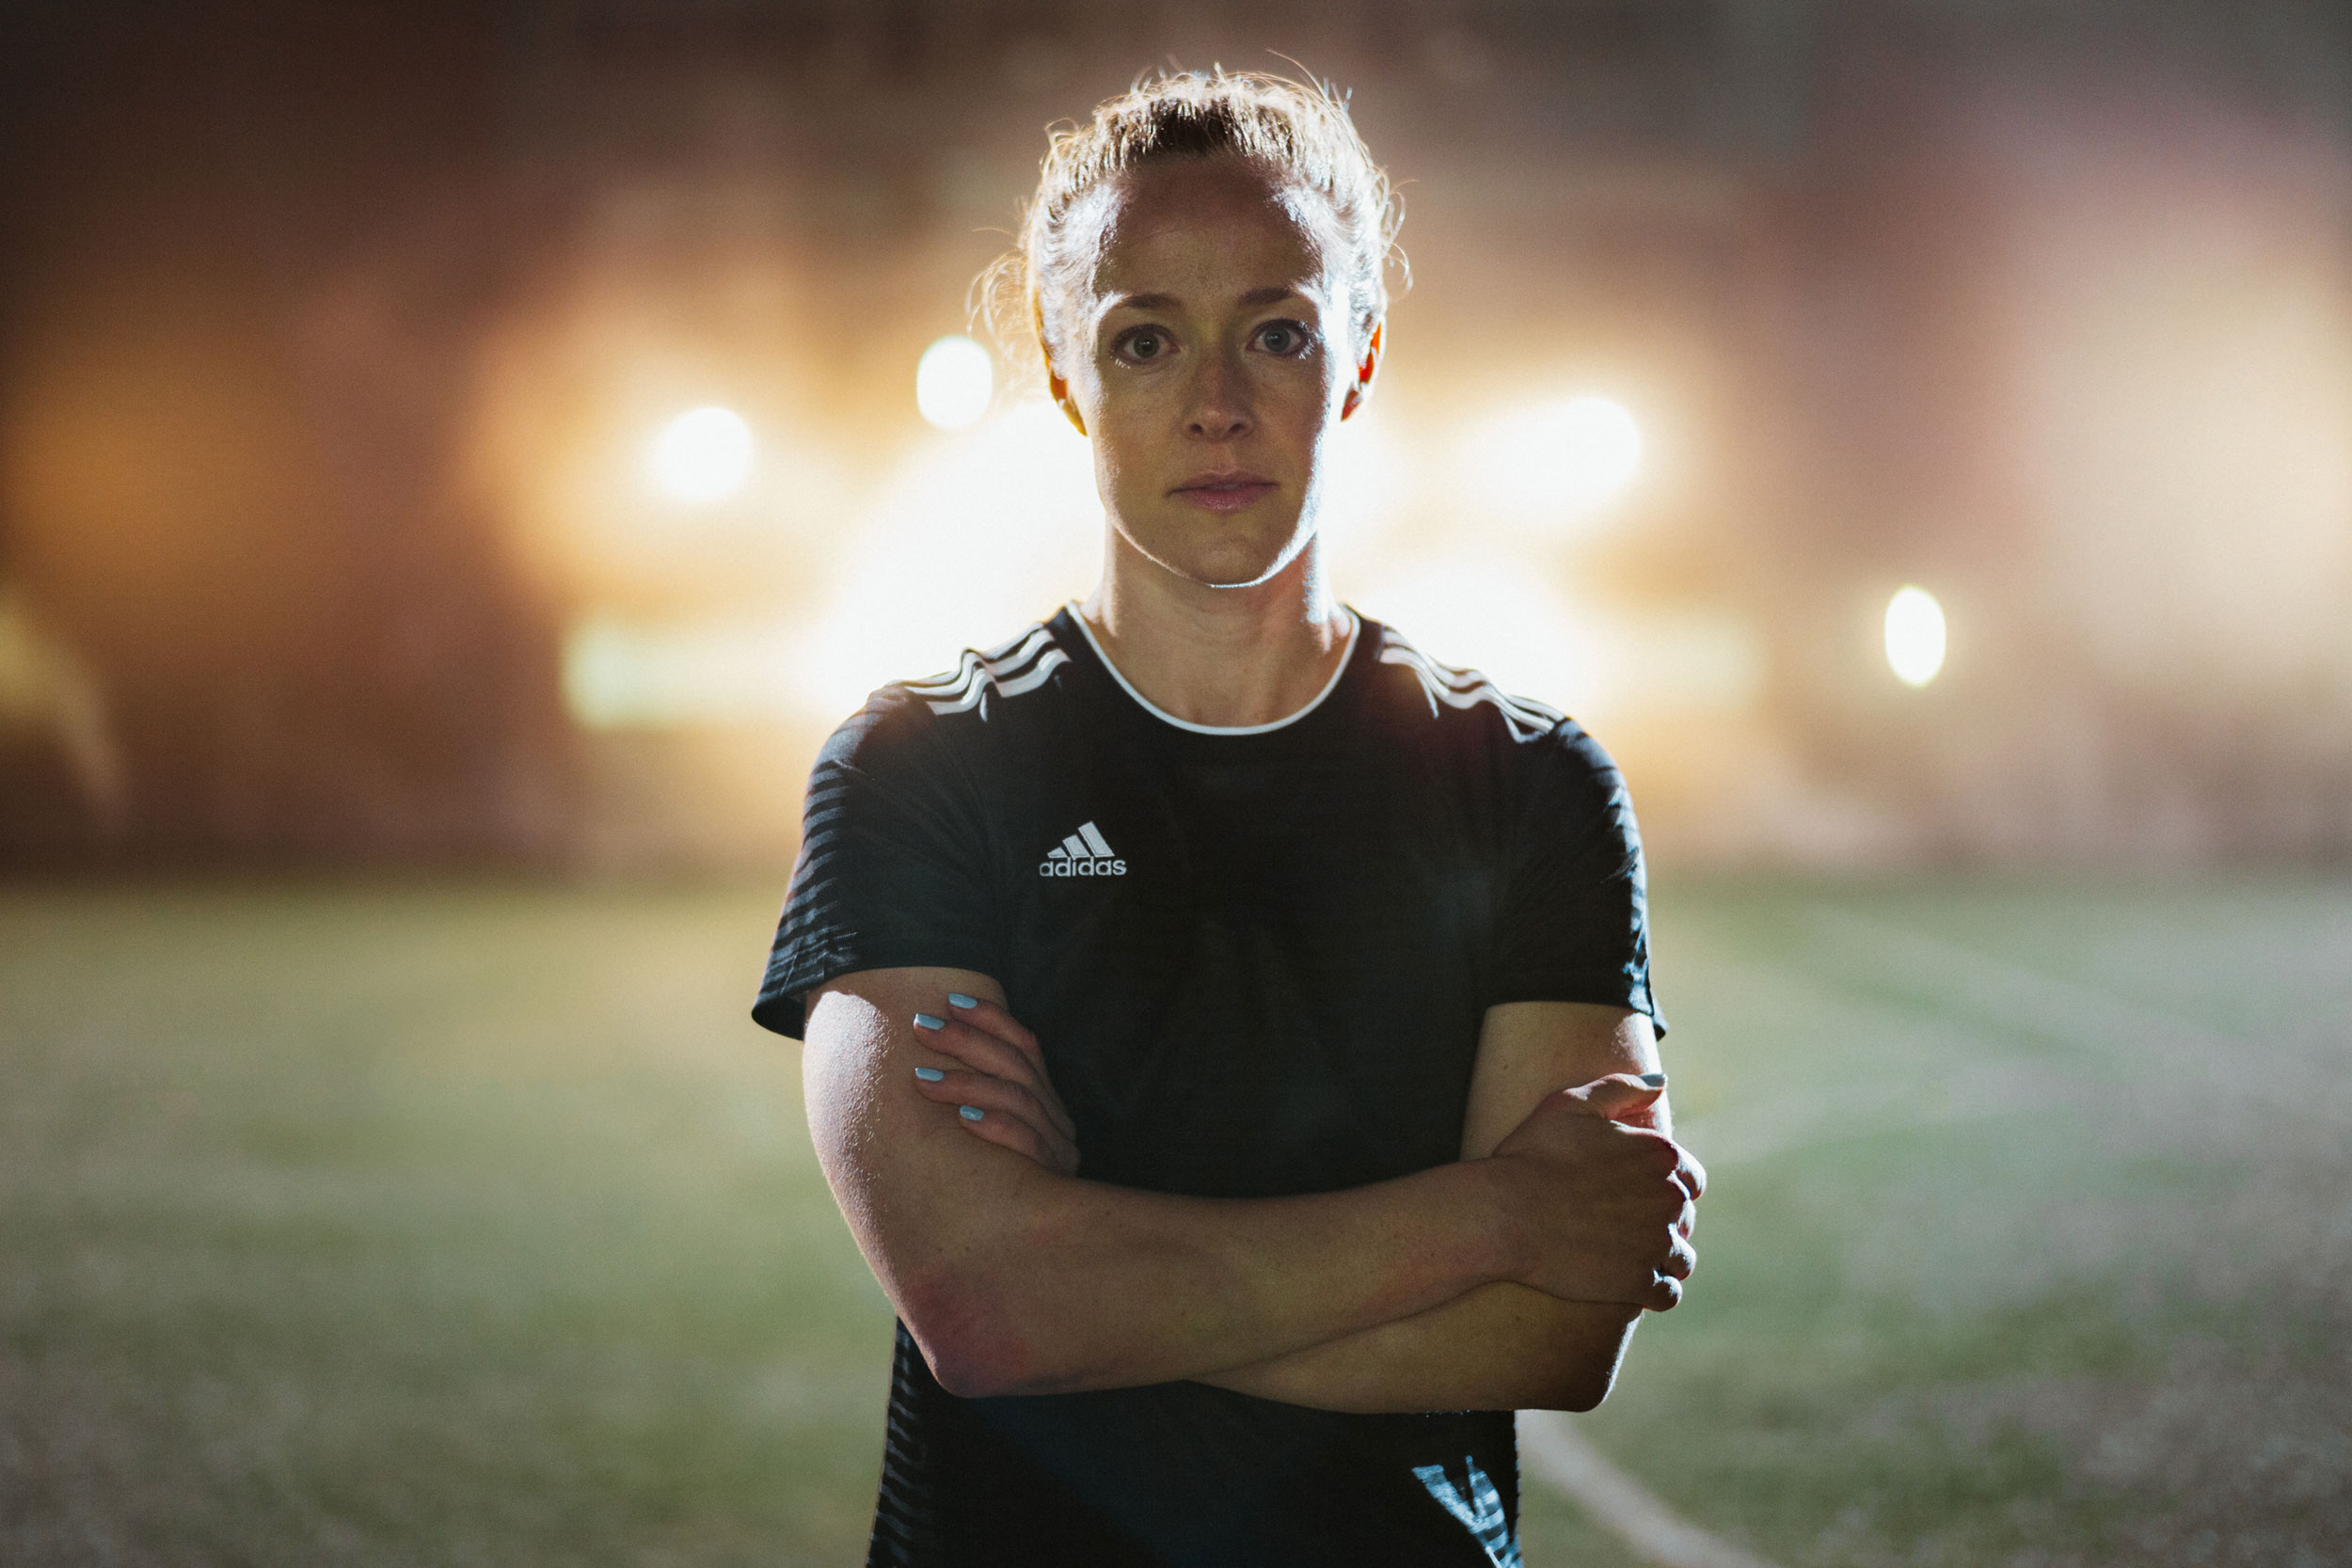 Becky Sauerbrunn is helping Adidas' efforts for equal media representation for women's sports.